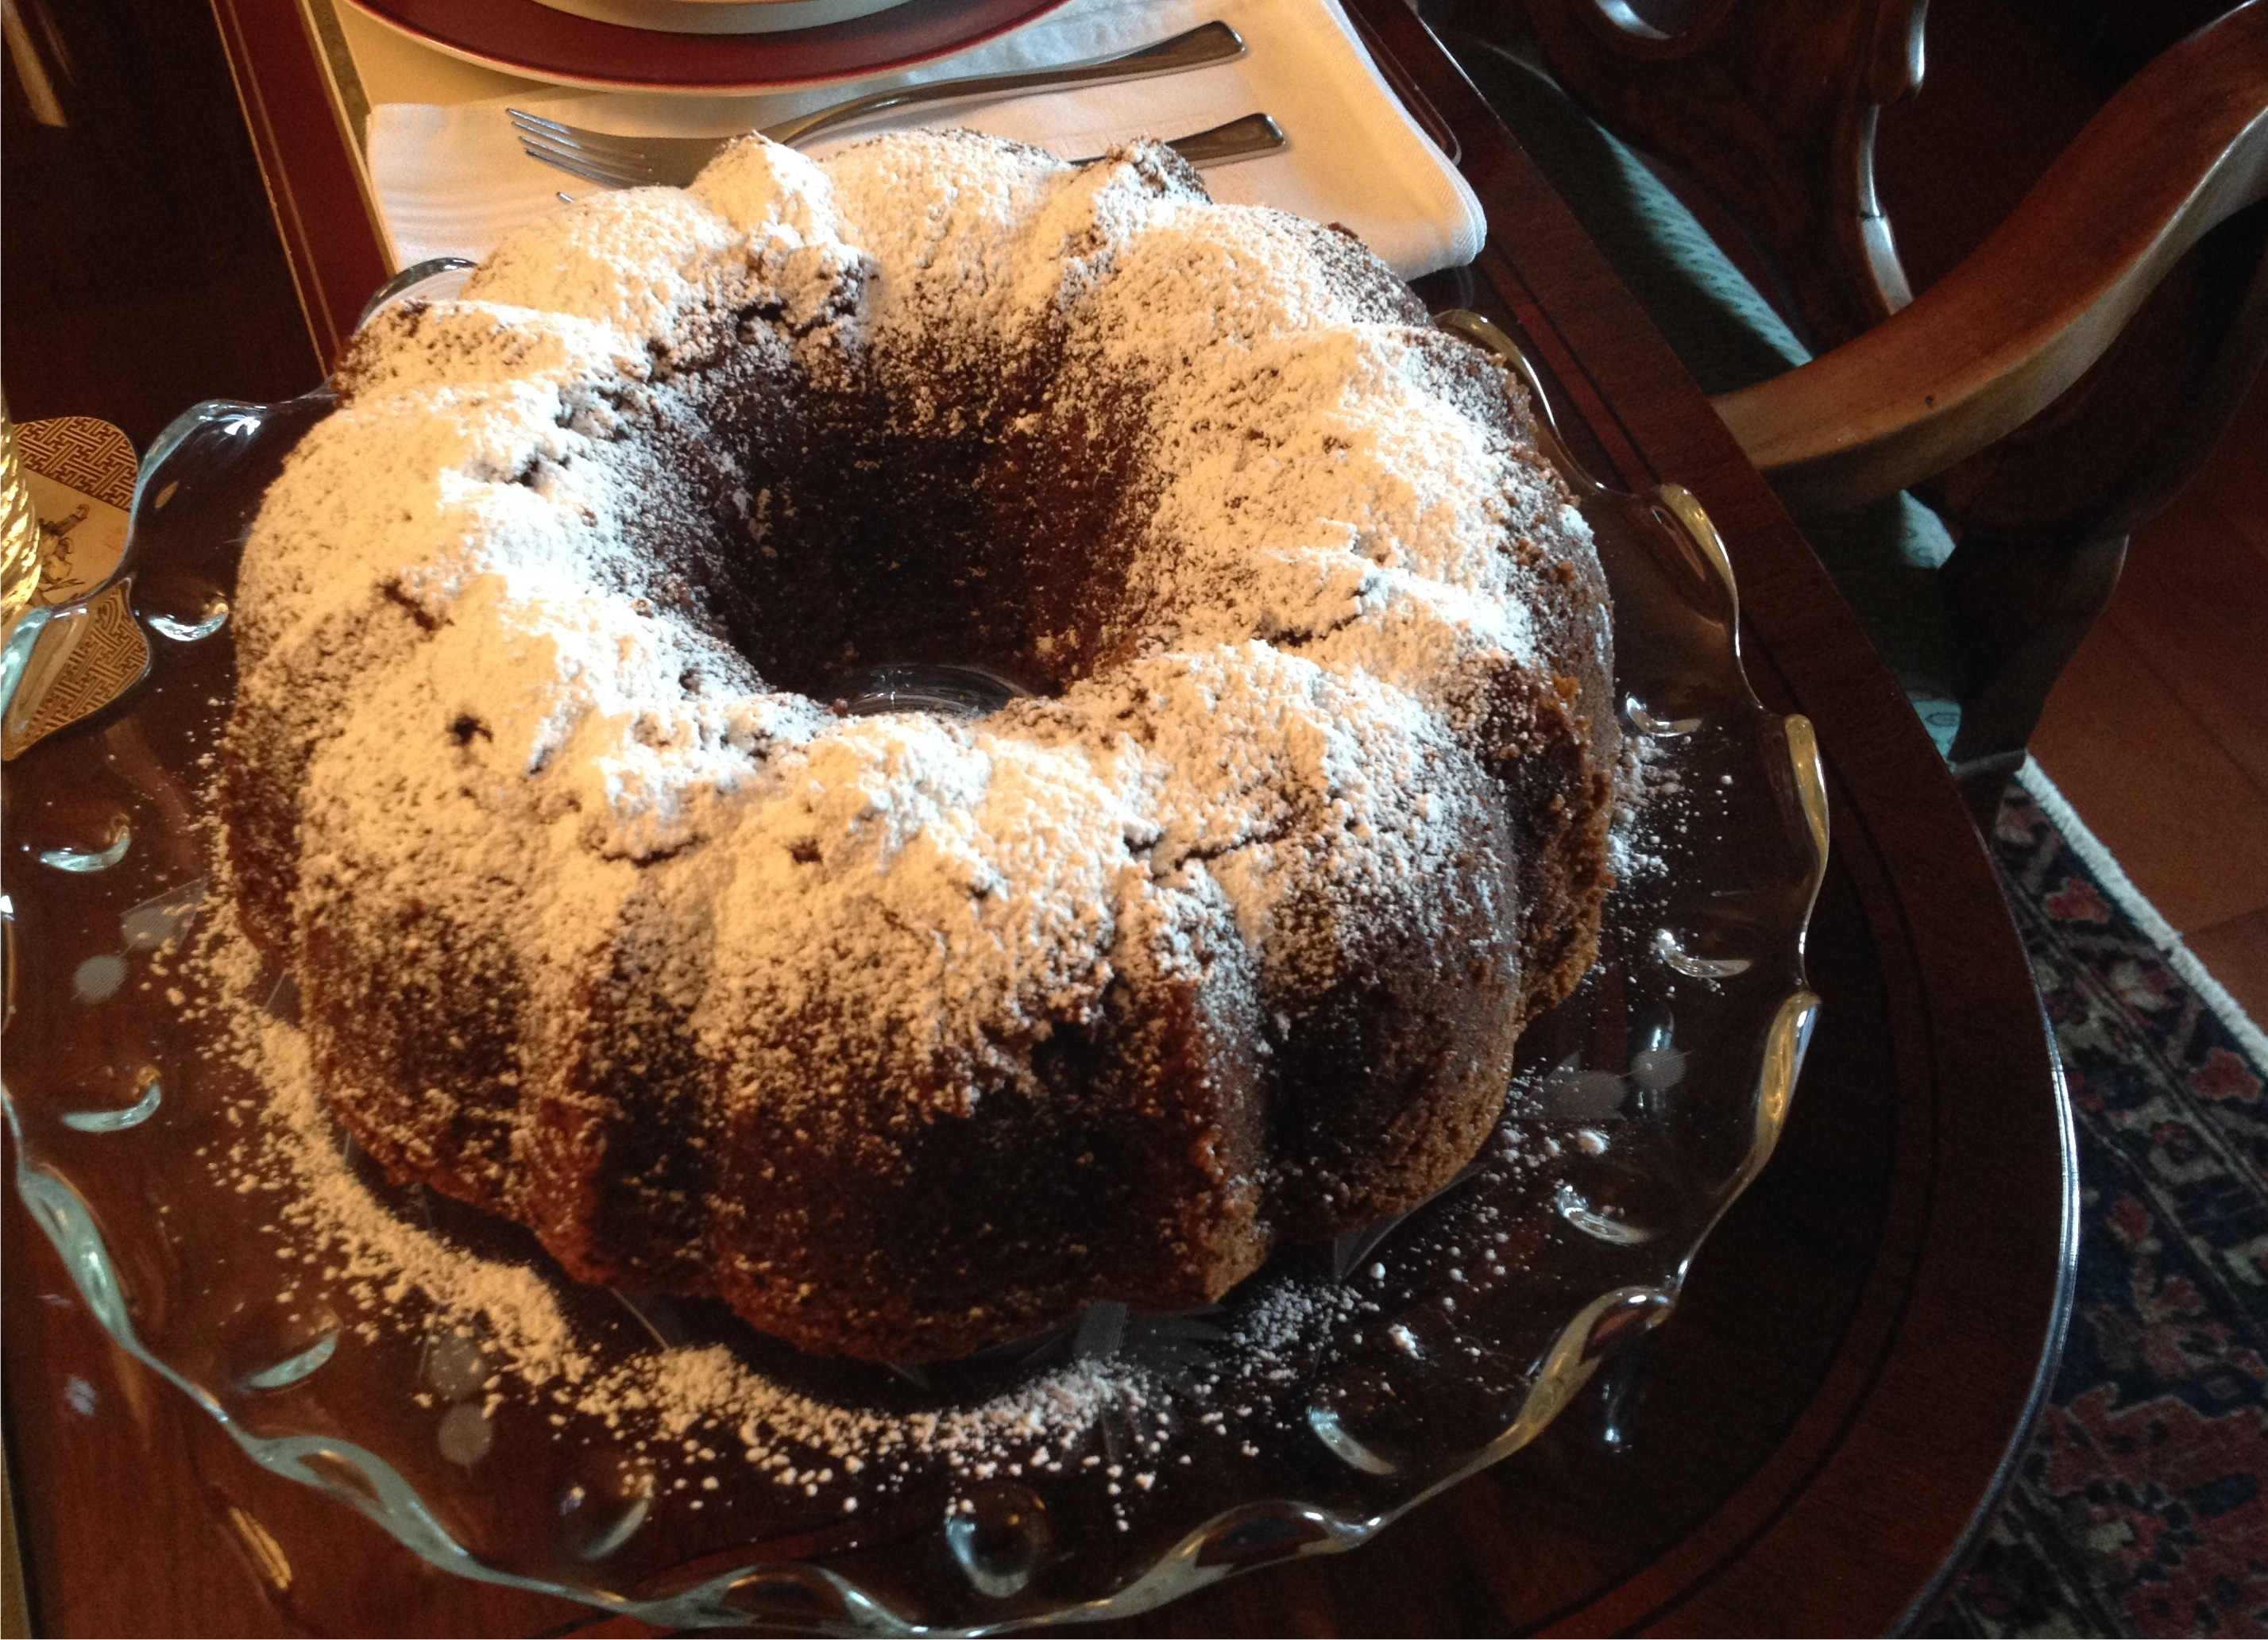 Bruce cost ginger ale spice cake on a crystal platter.